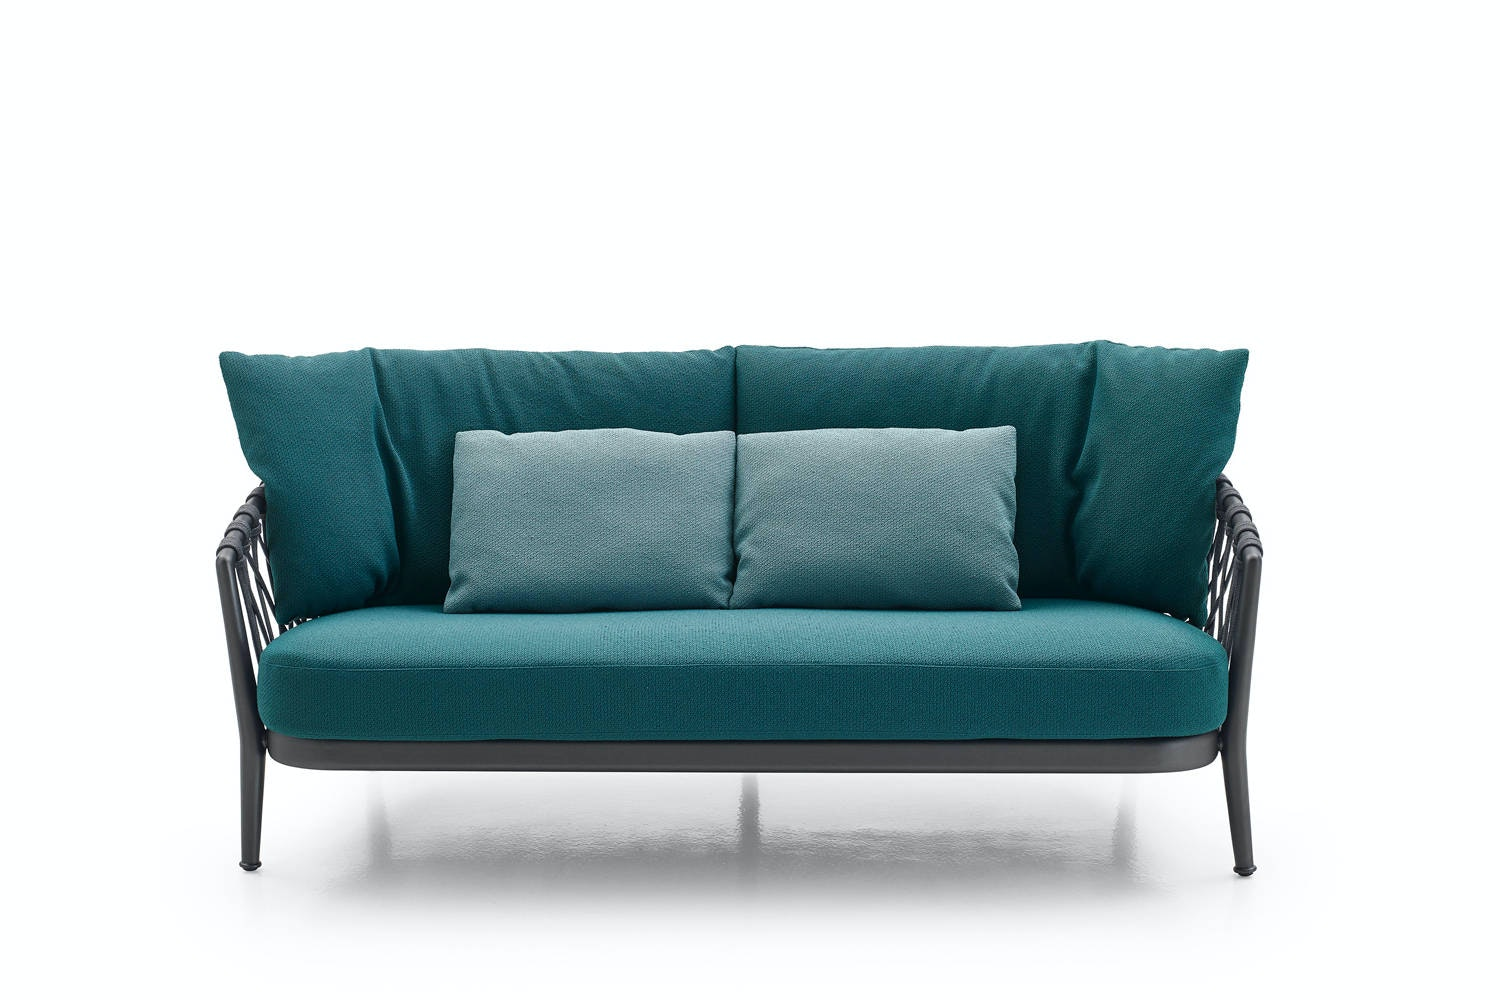 Erica Sofa by Antonio Citterio for B&B Italia